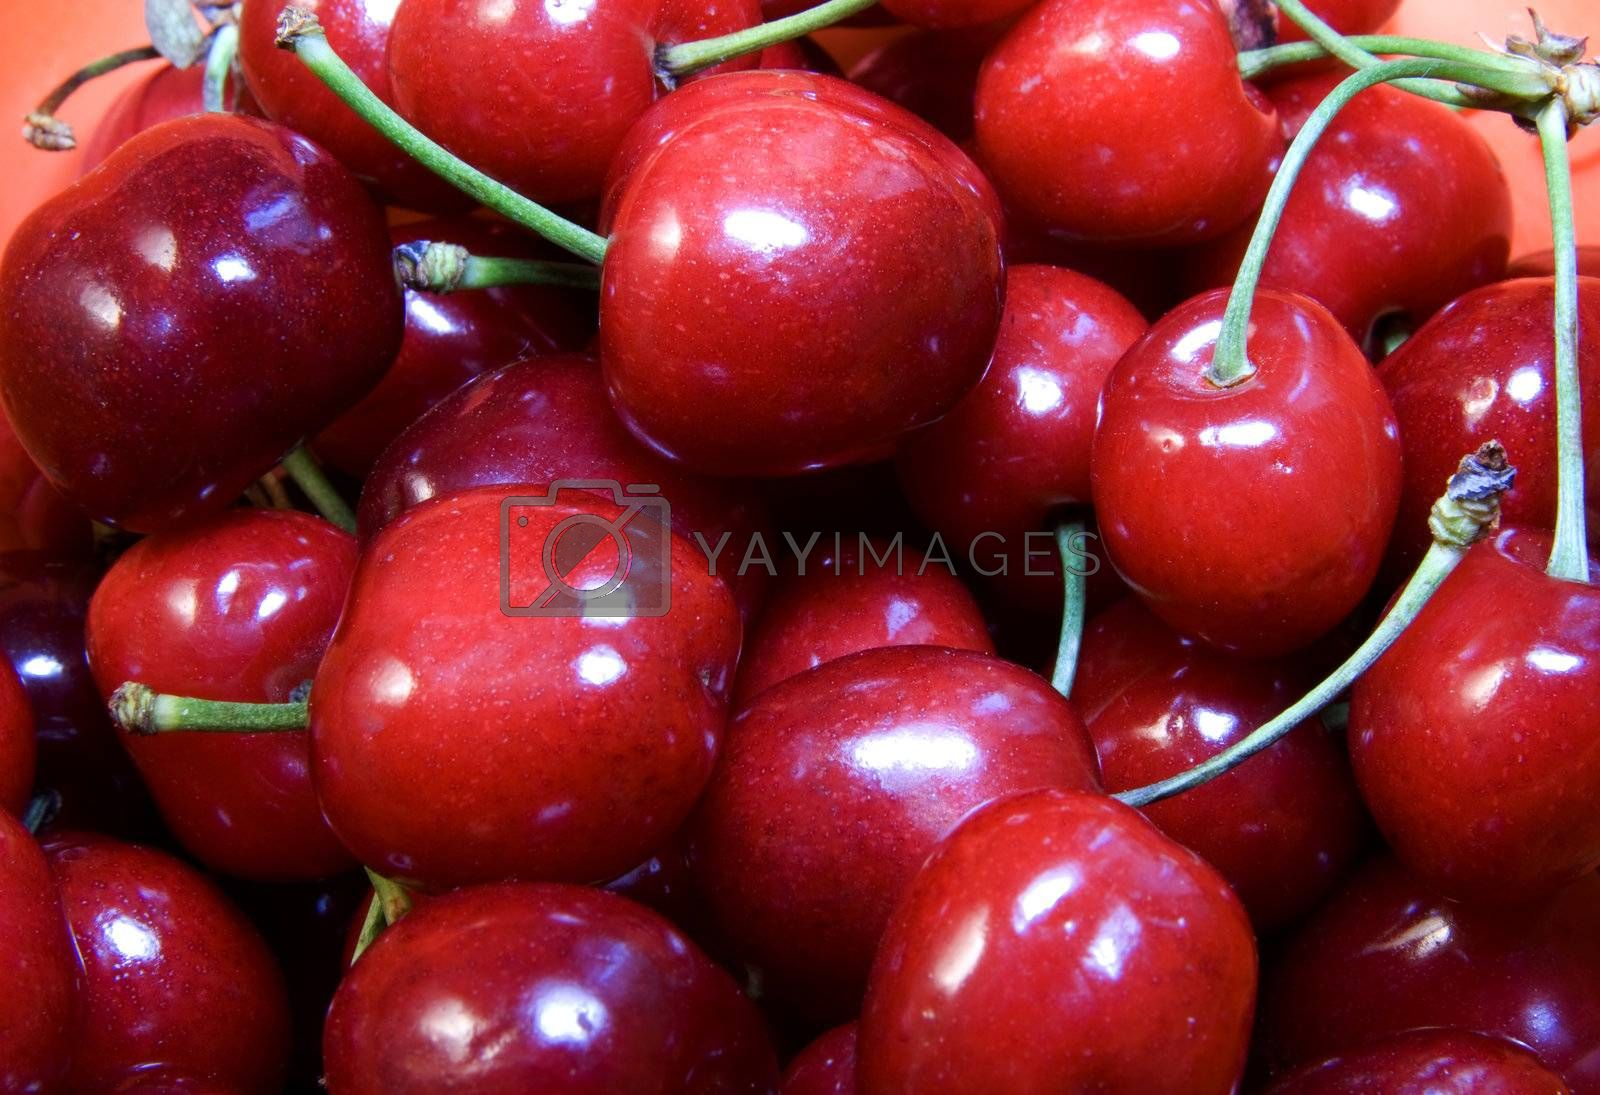 Royalty free image of Cherries by Koufax73